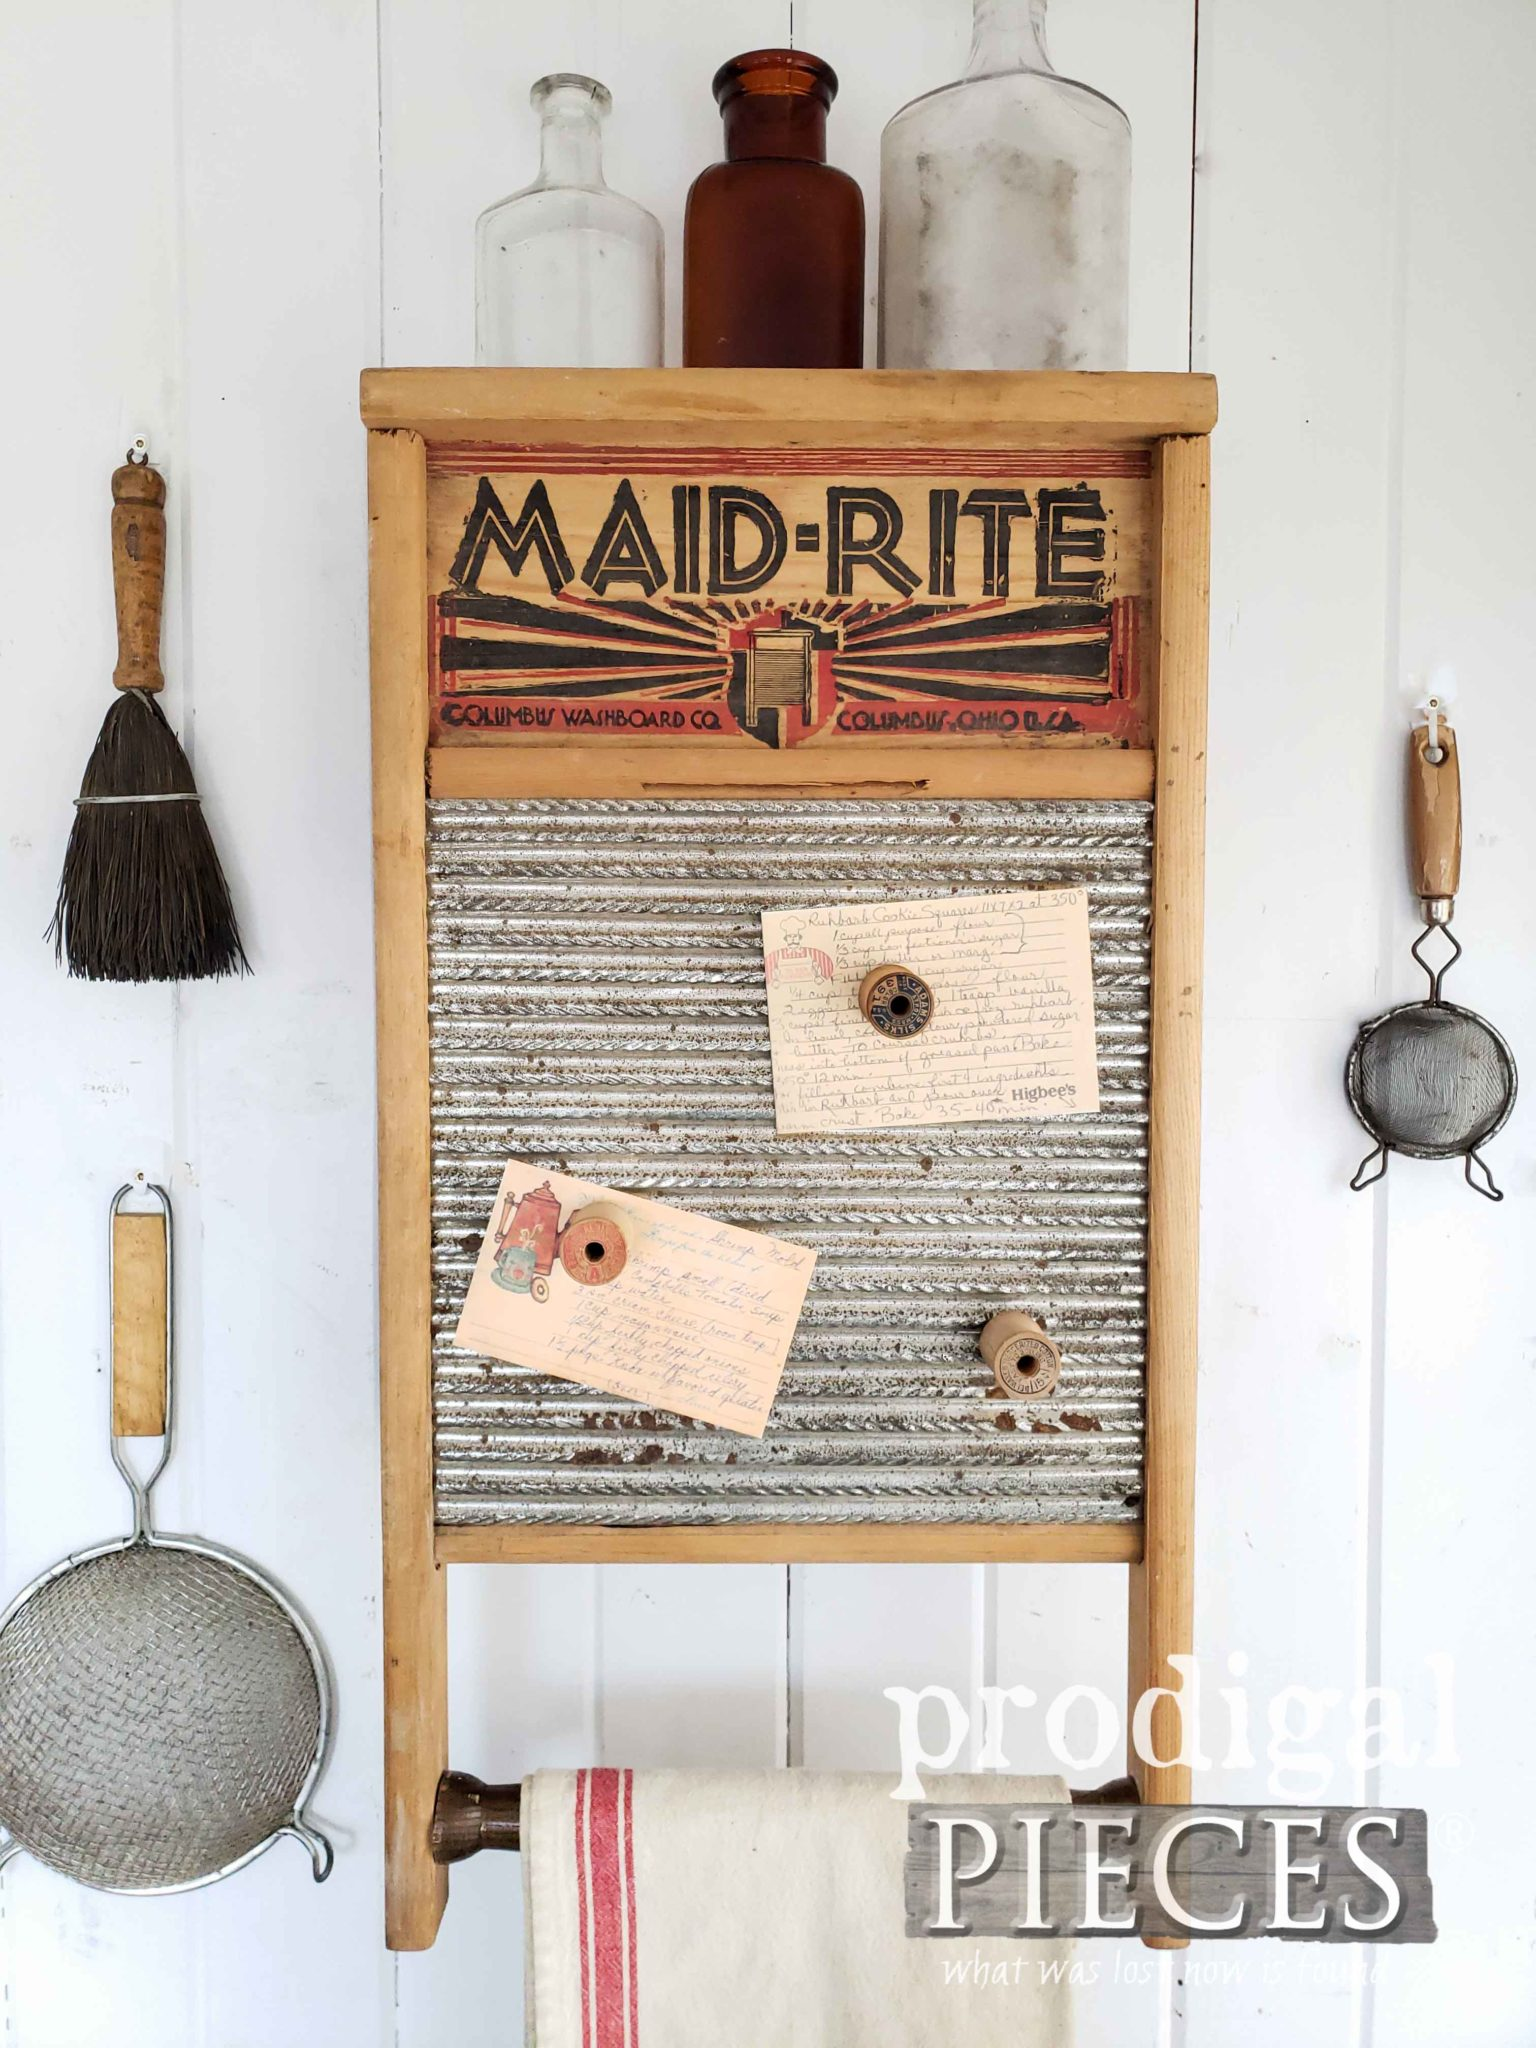 Vintage Farmhouse Style Washboard and Silverware Box Upcycled into Wall Cupboard by Larissa of Prodigal Pieces   prodigalpieces.com #prodigalpieces #farmhouse #diy #handmade #home #homedecor #vintage